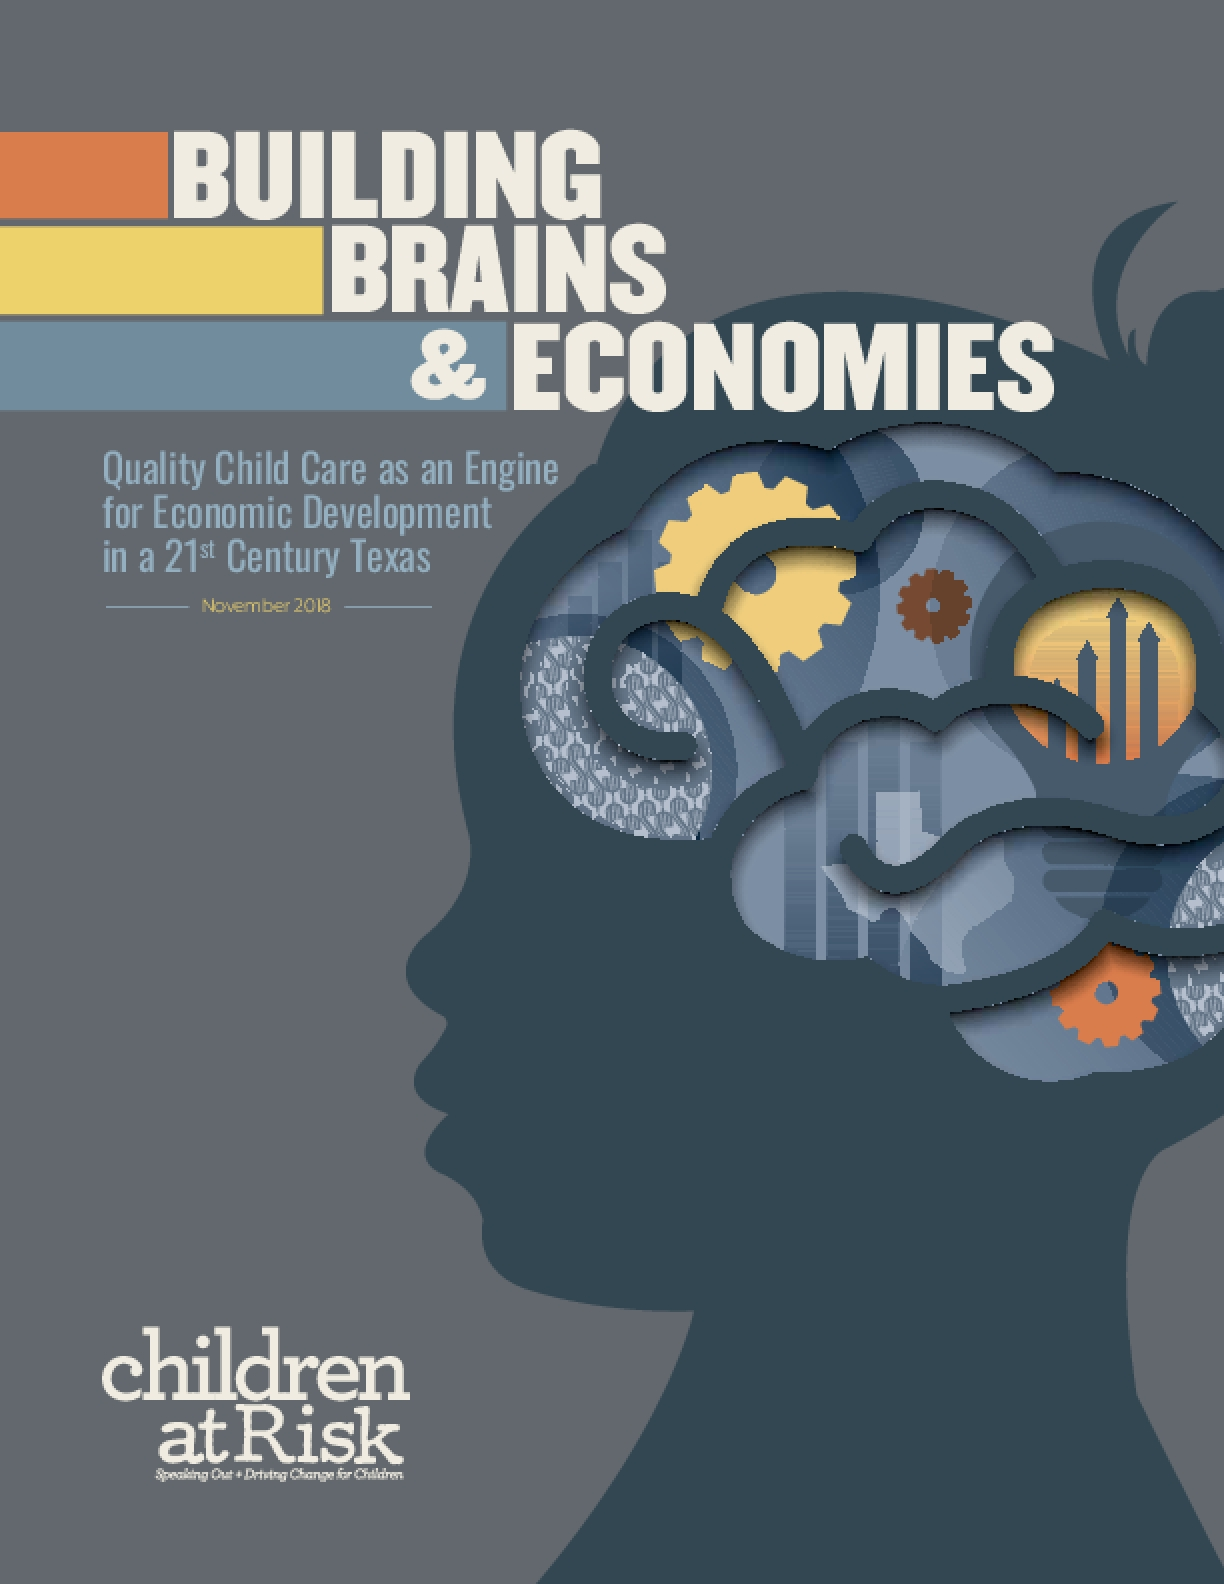 Building Brains & Economies: Quality Child Care as an Engine for Economic Development in a 21st Century Texas